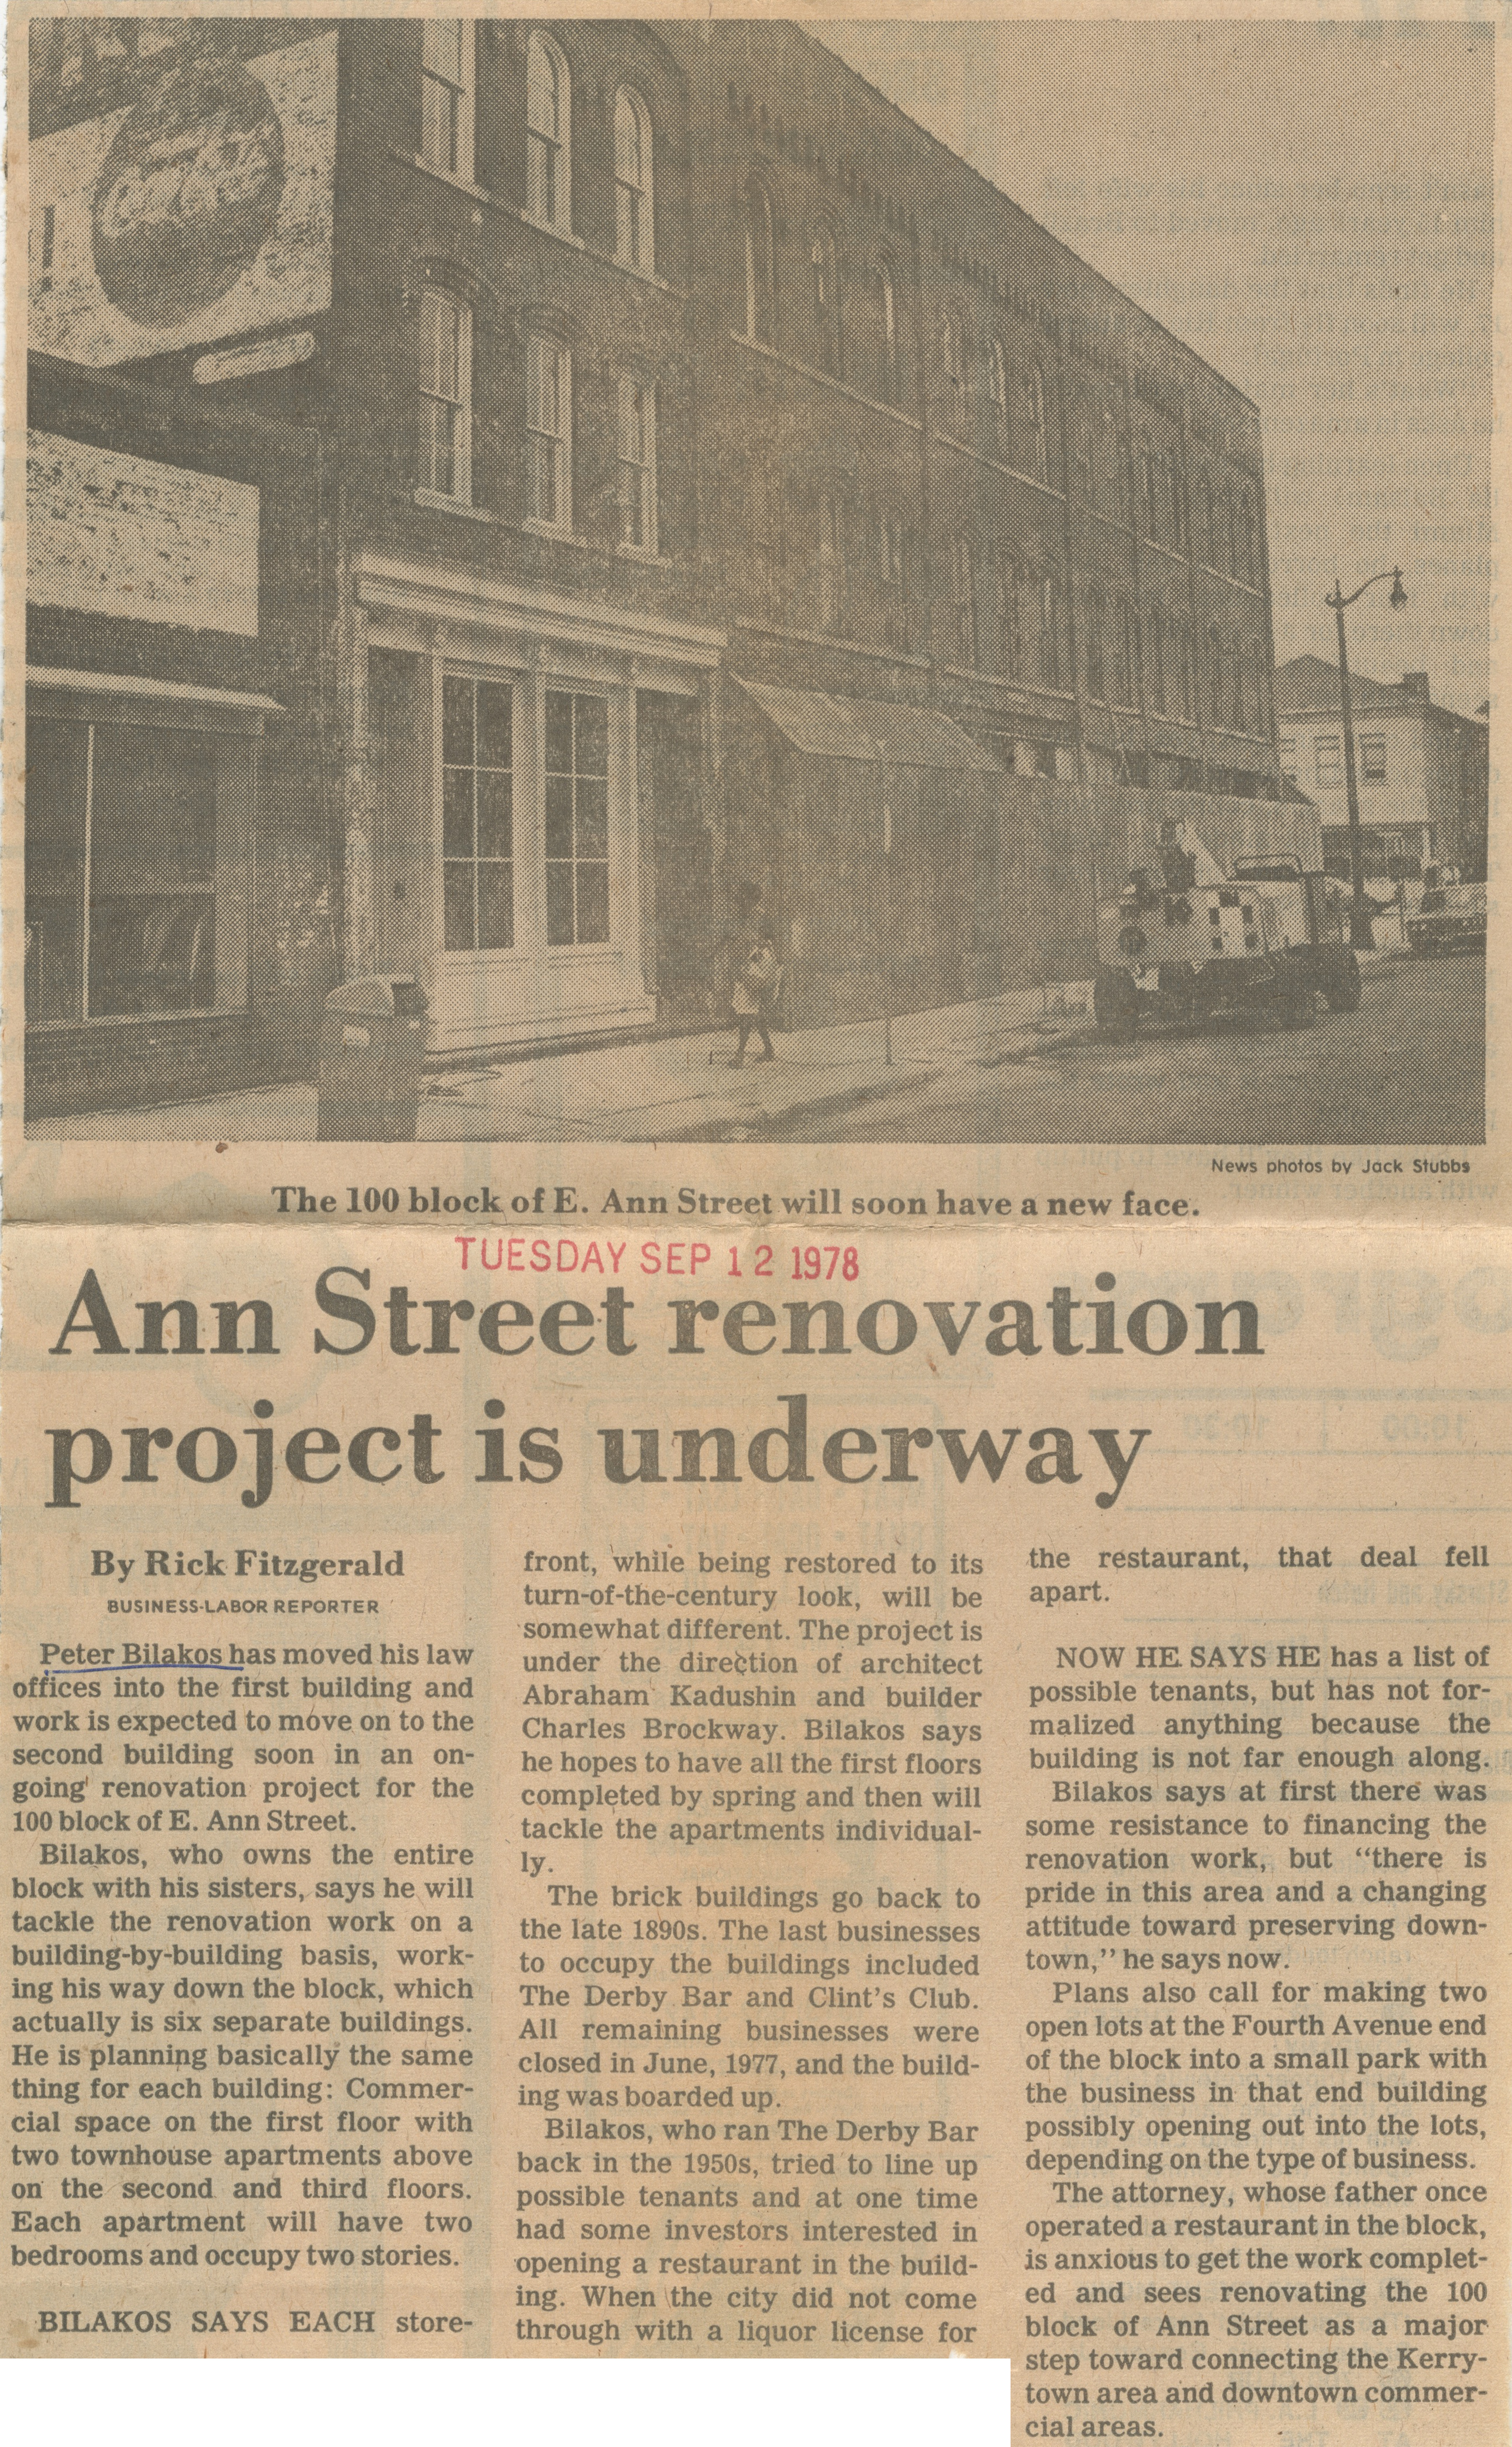 Ann Street Renovation Project Is Underway image